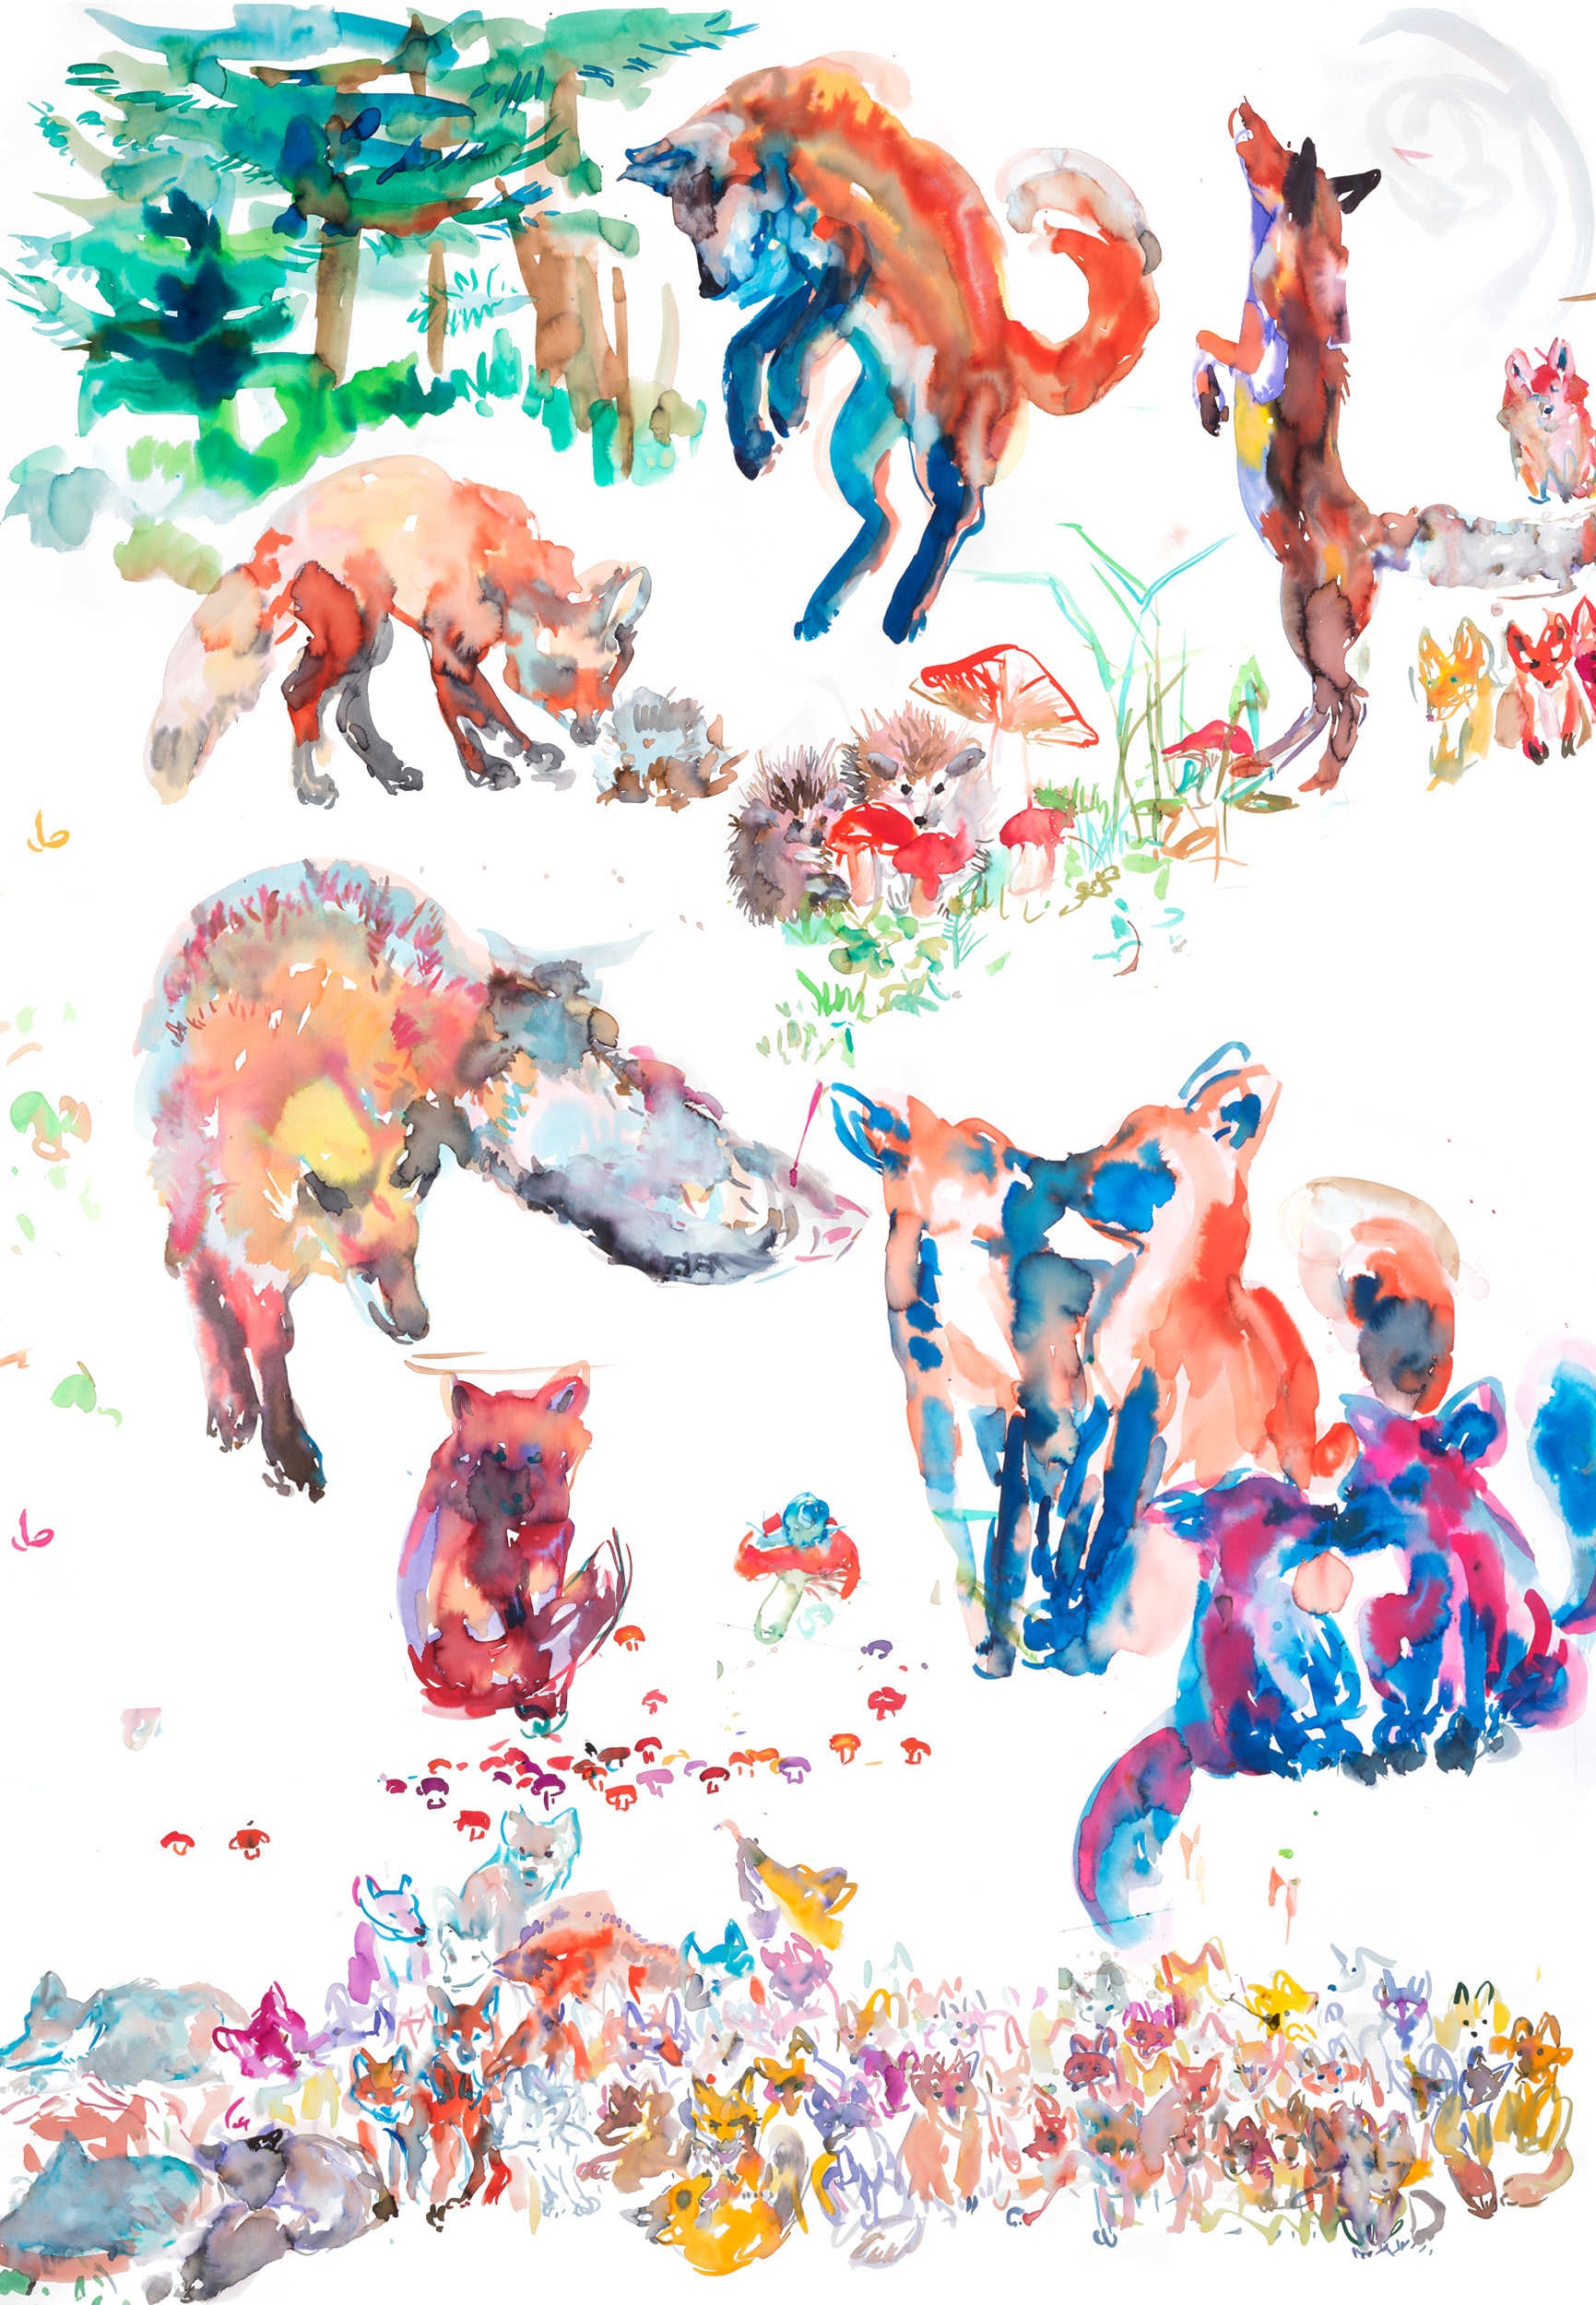 foxestableau a - ARTWORK DETAILS:Fine Art print of original watercolor painting.Limited editionWidth: 68 cm (approx 27